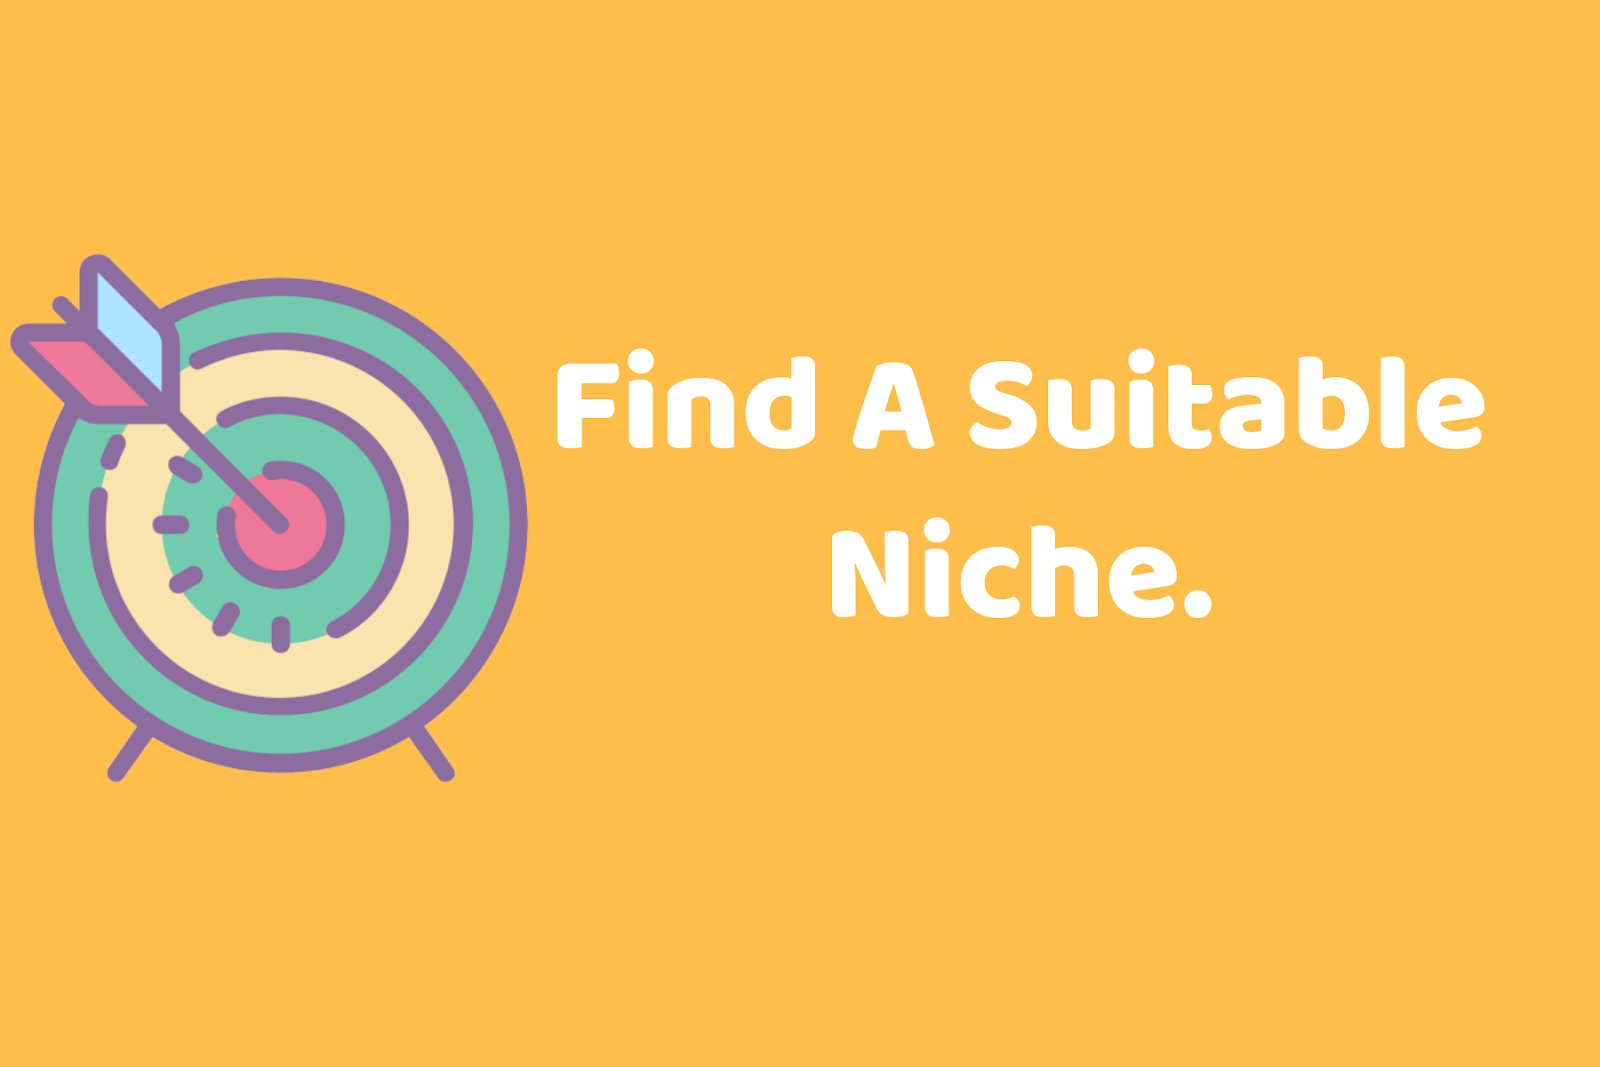 Find a suitable niche